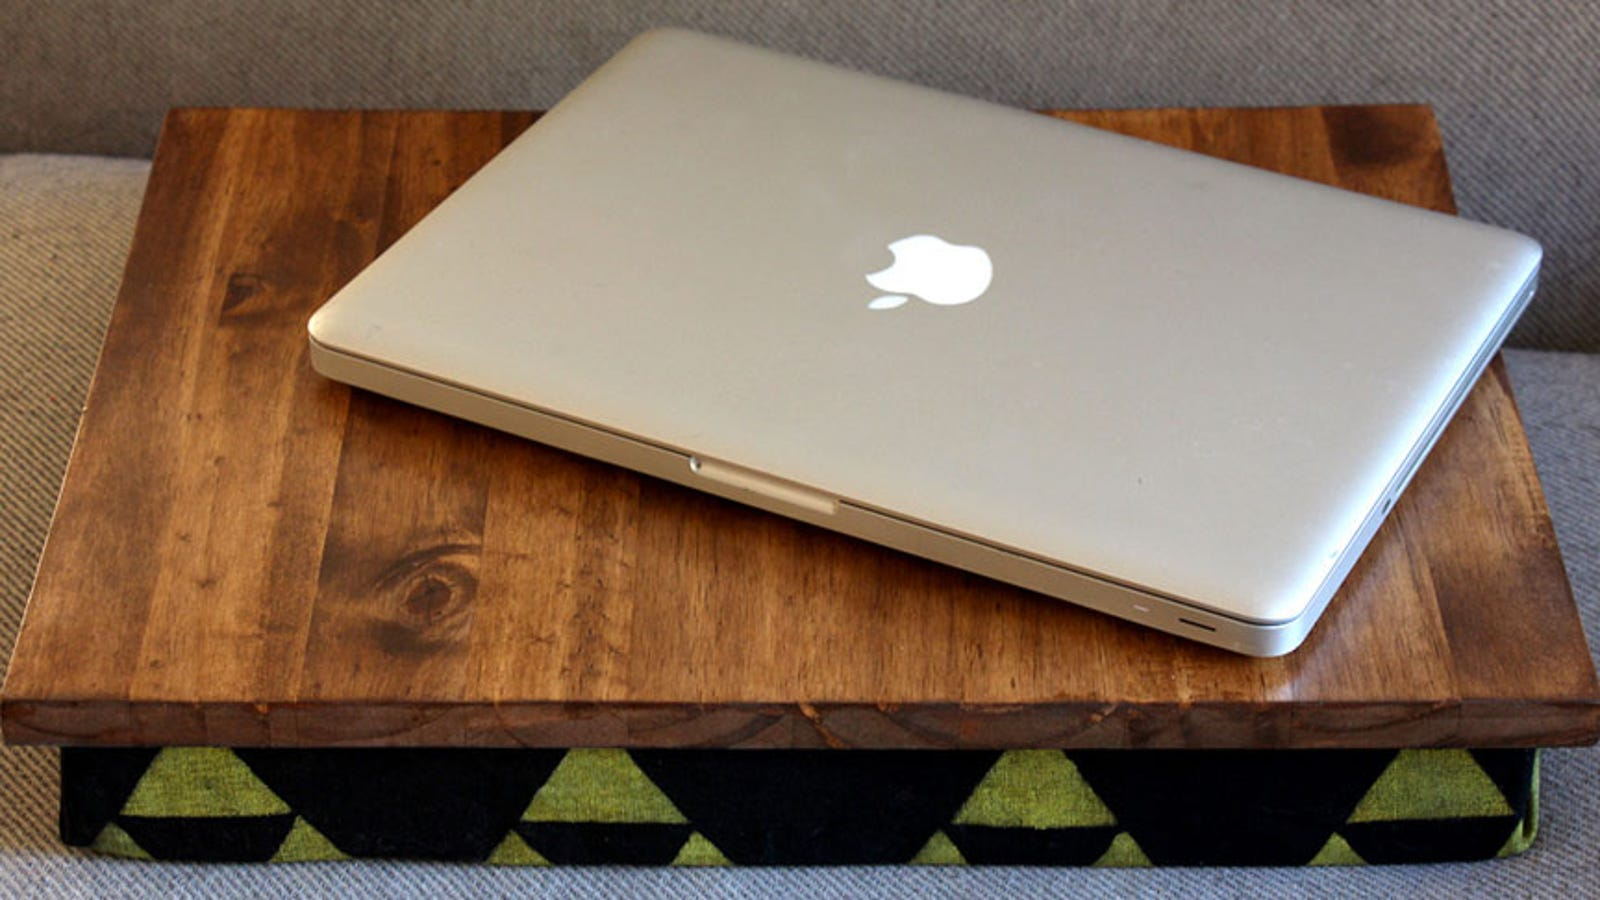 Make an Awesome Wooden Lap Desk for $20